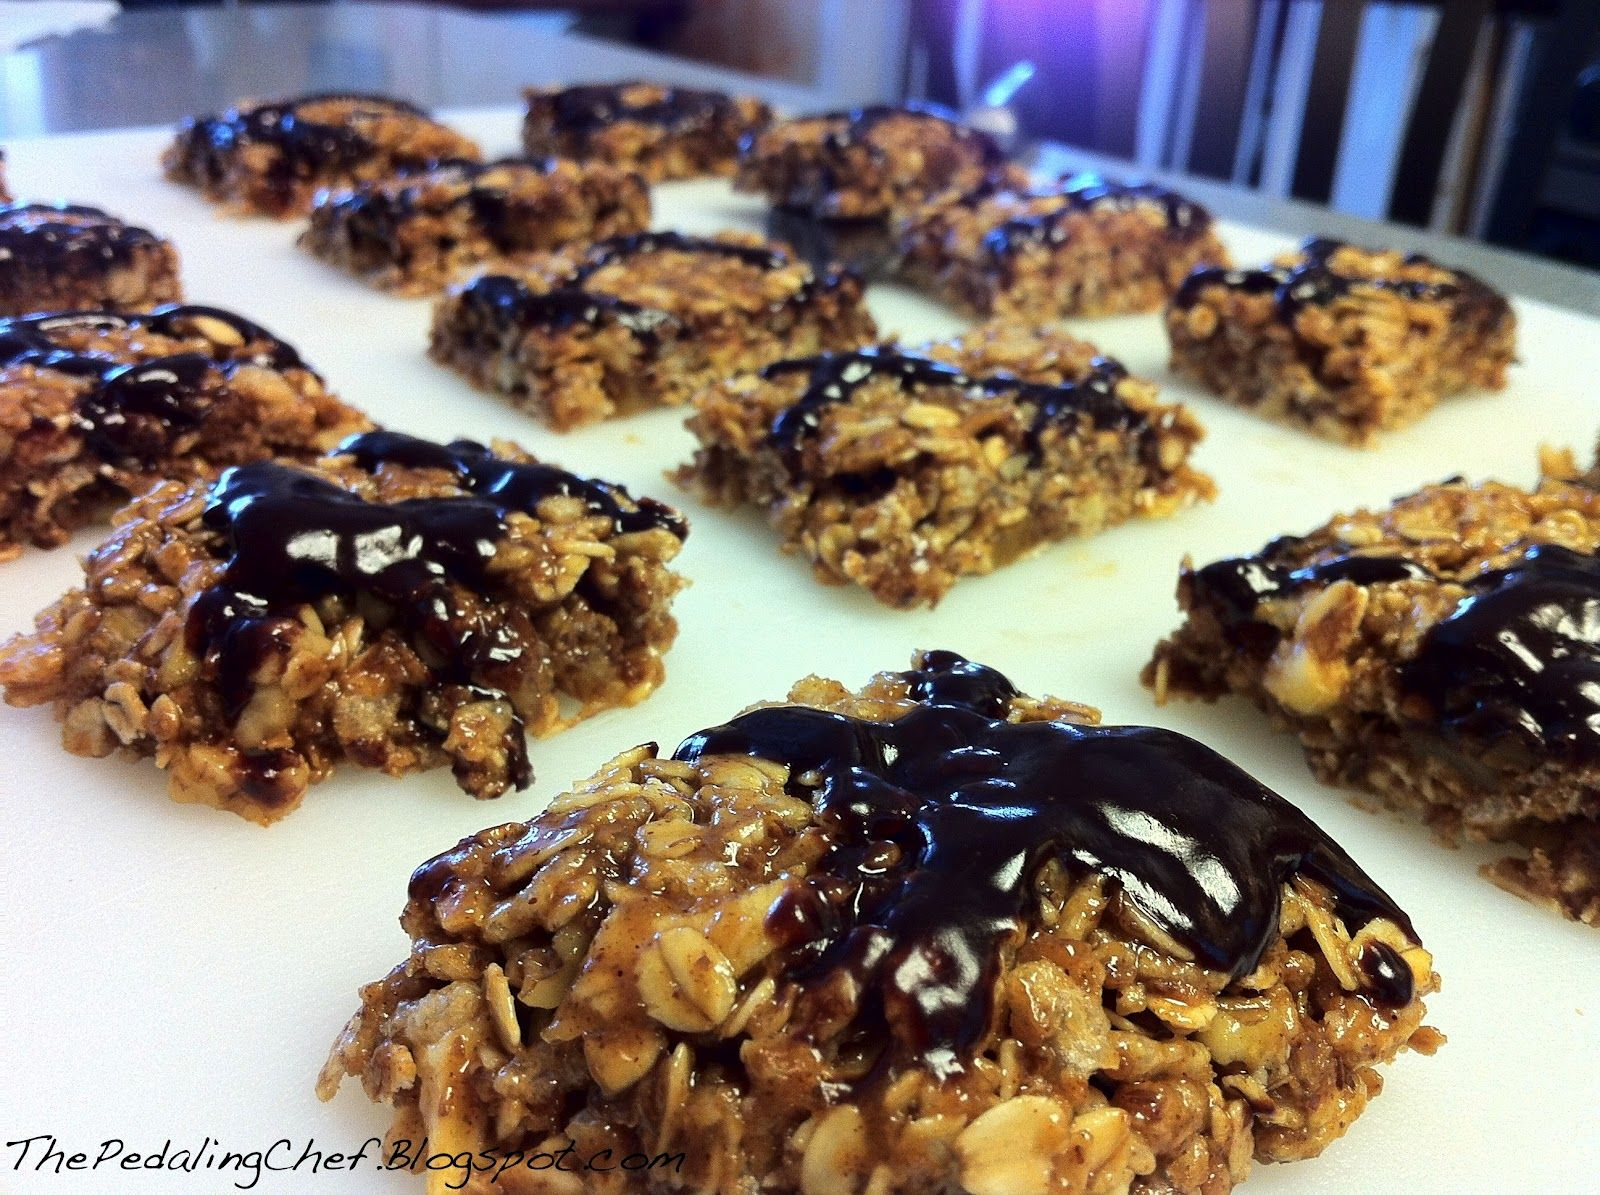 The Pedaling Chef: Homemade Clif Bars